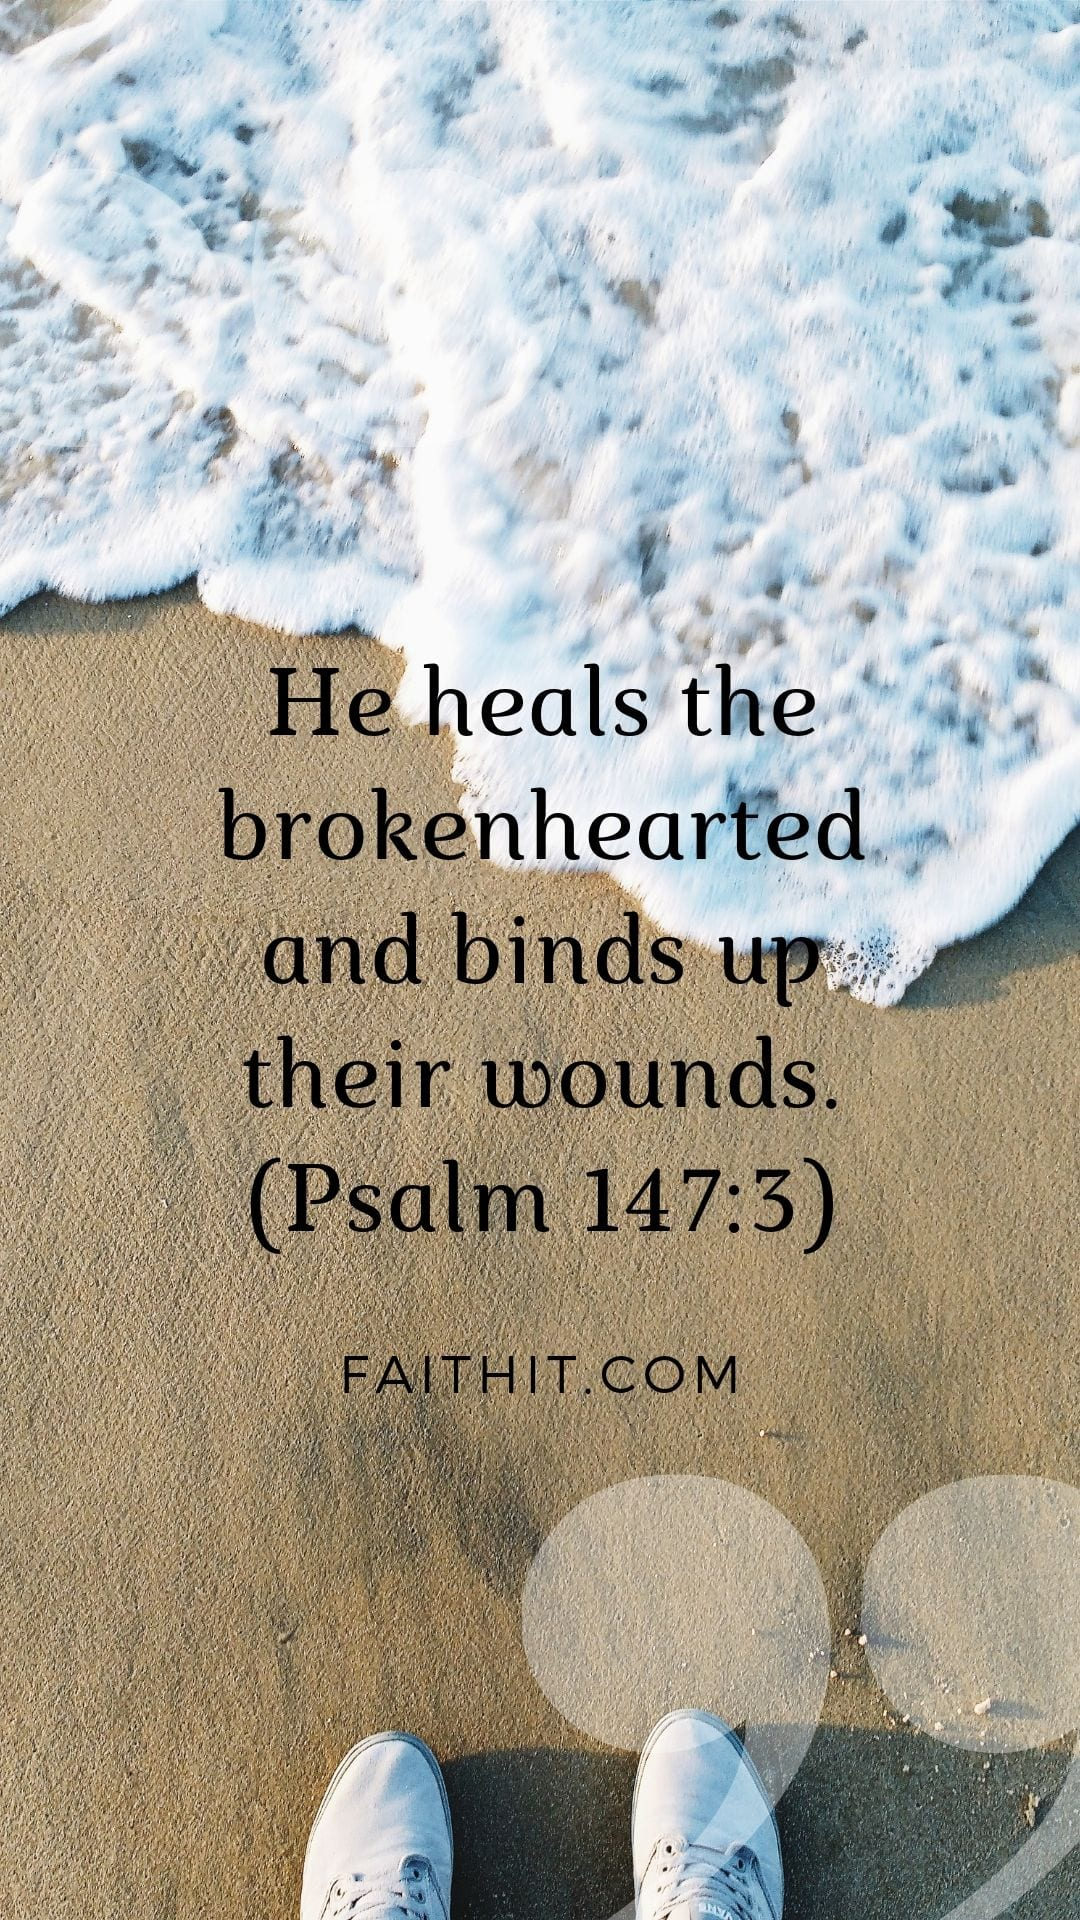 He heals the brokenhearted and binds up their wounds. (Psalm 147:3)